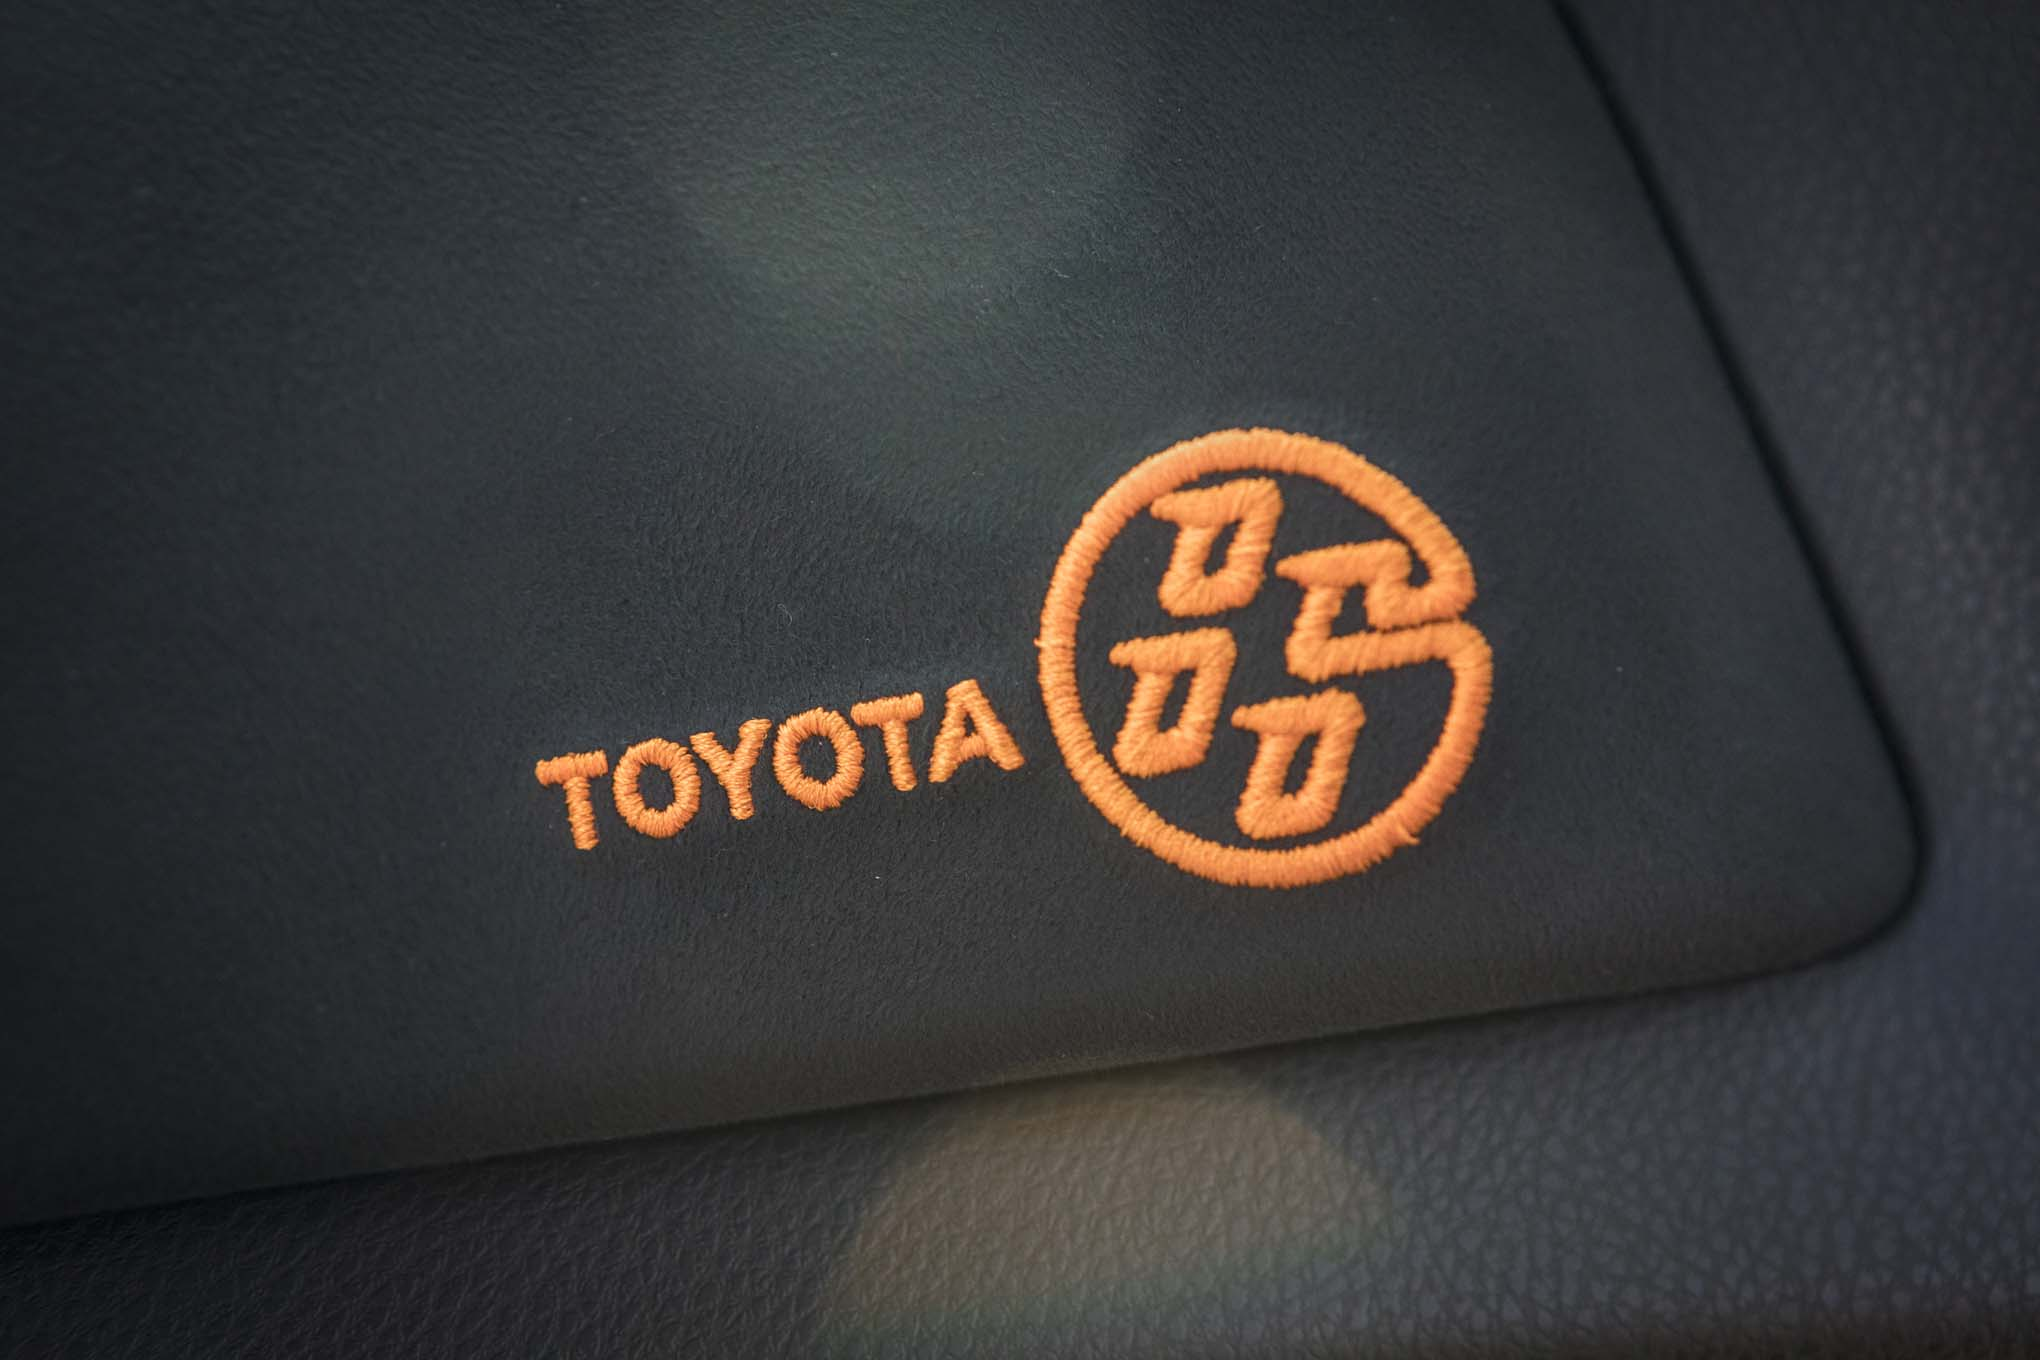 2017 Toyota 86 860 Special Edition stitching